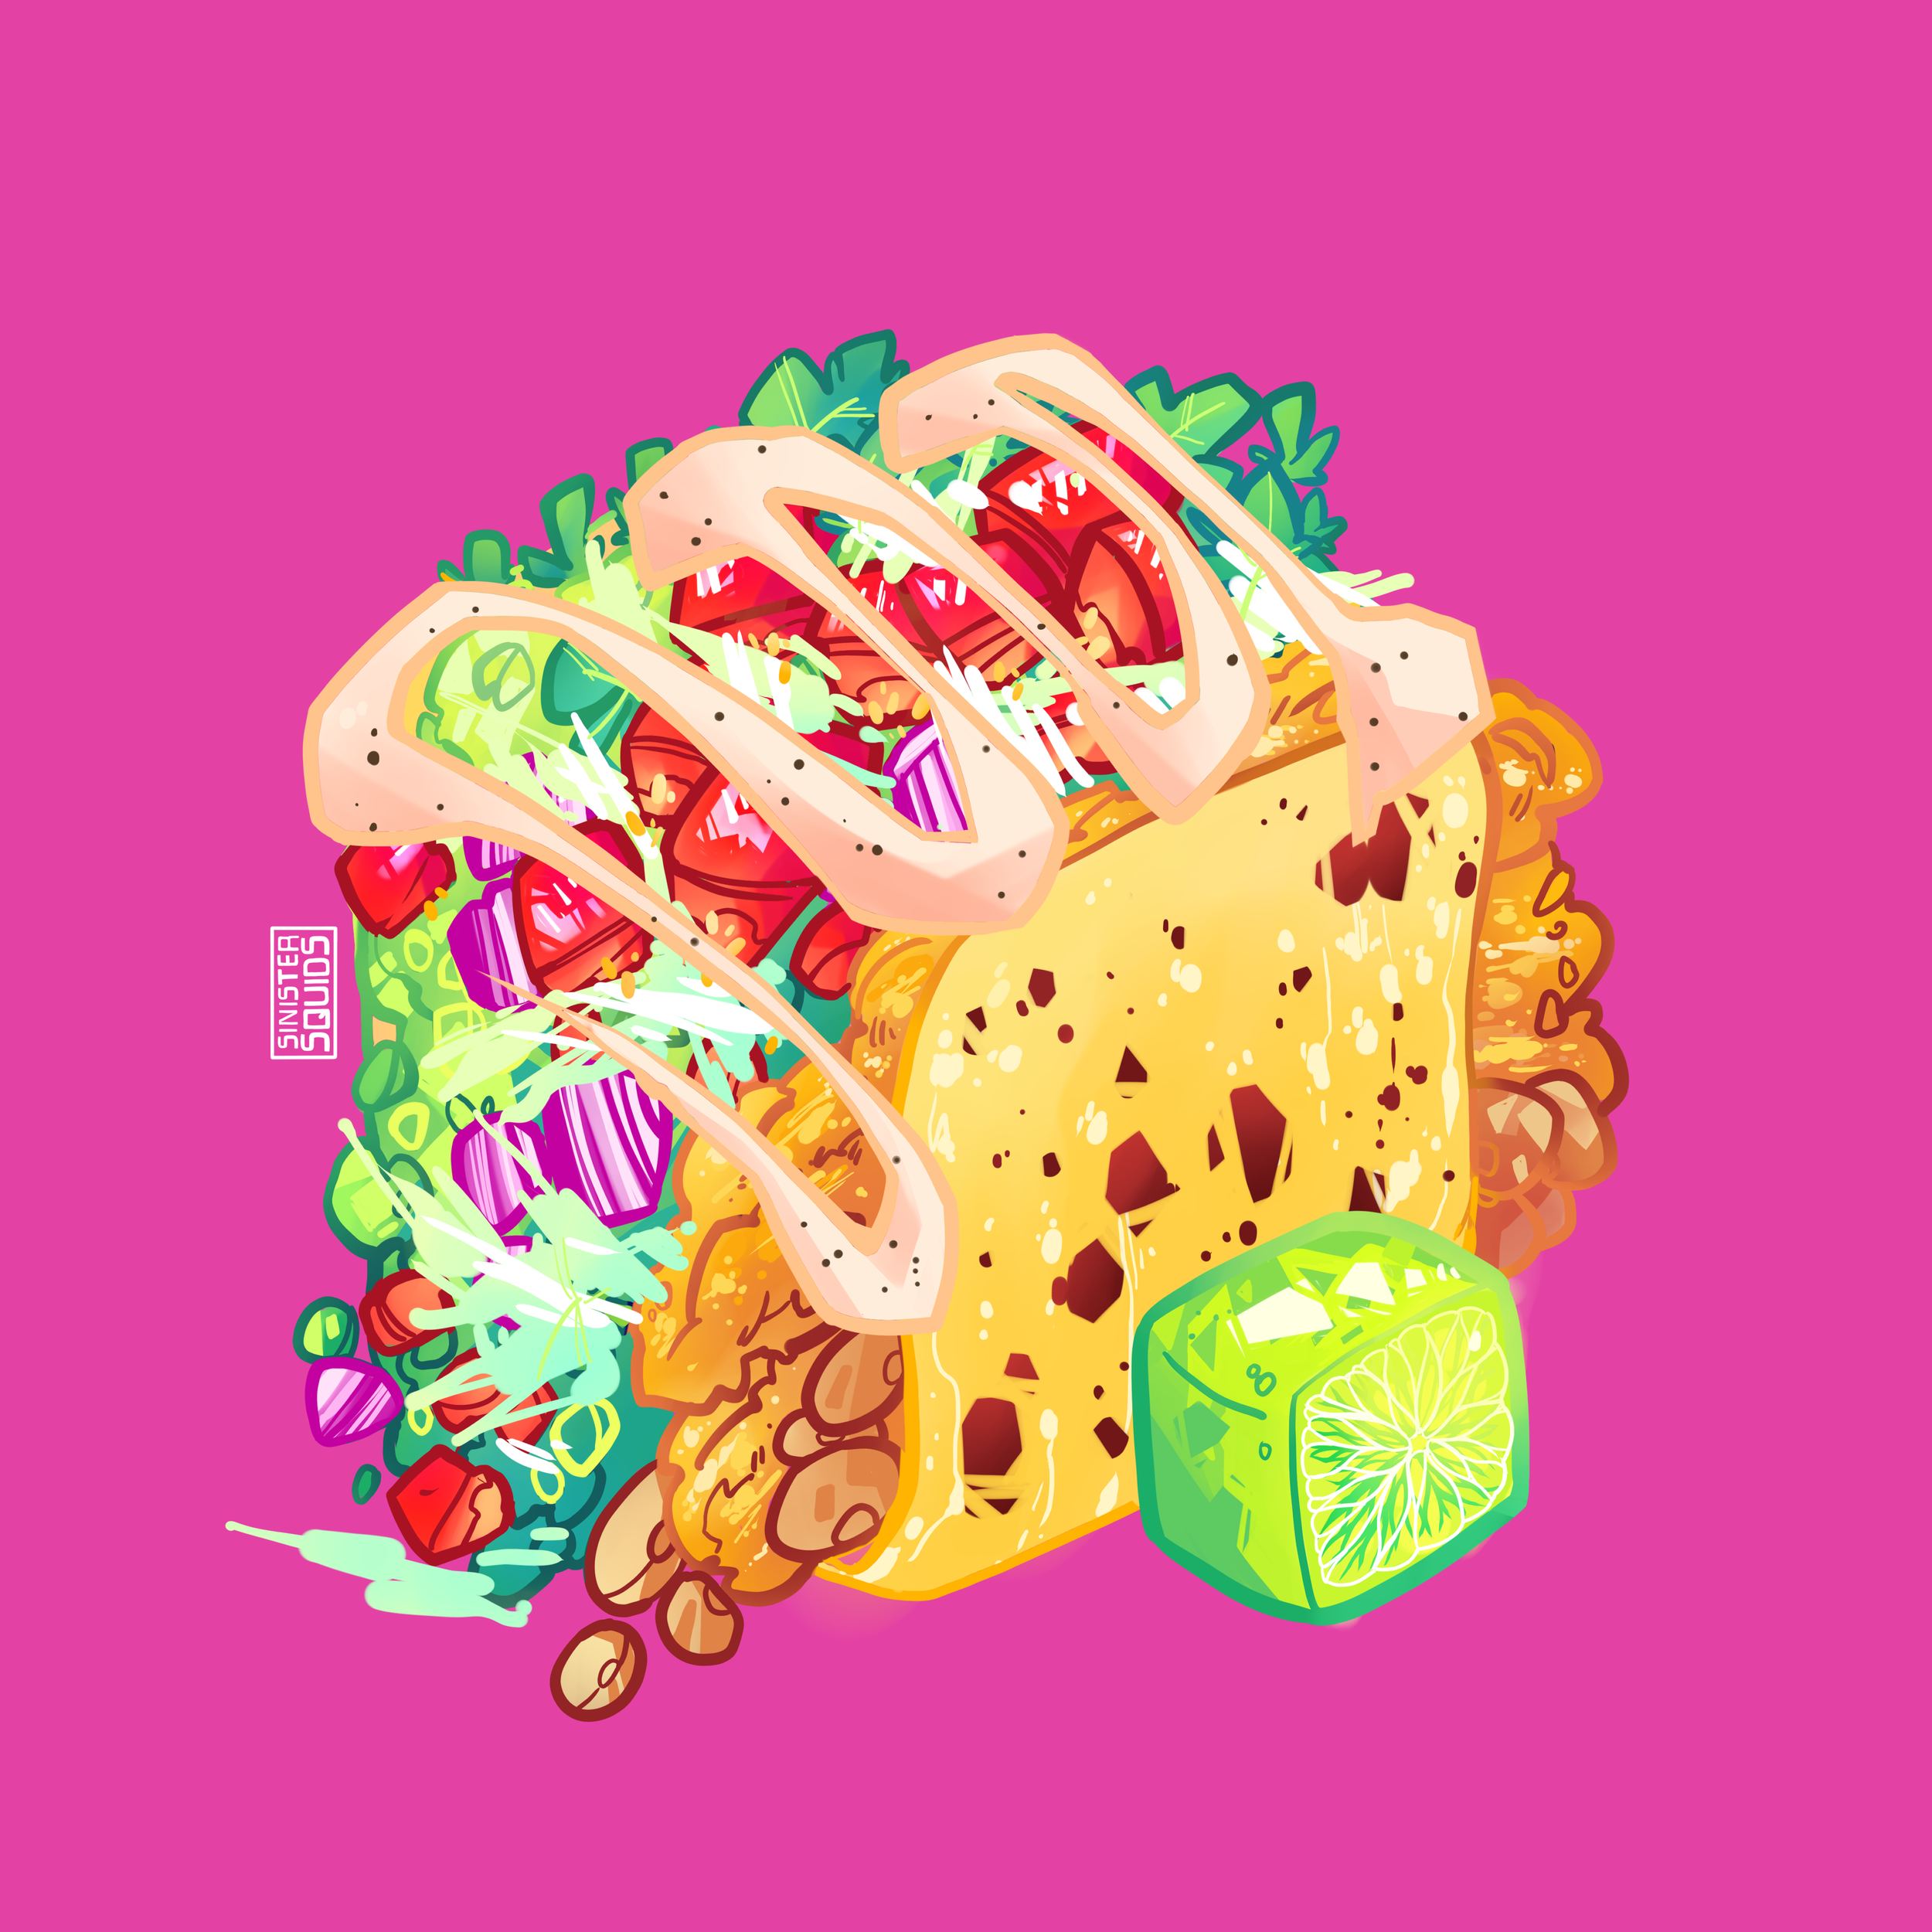 tacoig0005.png